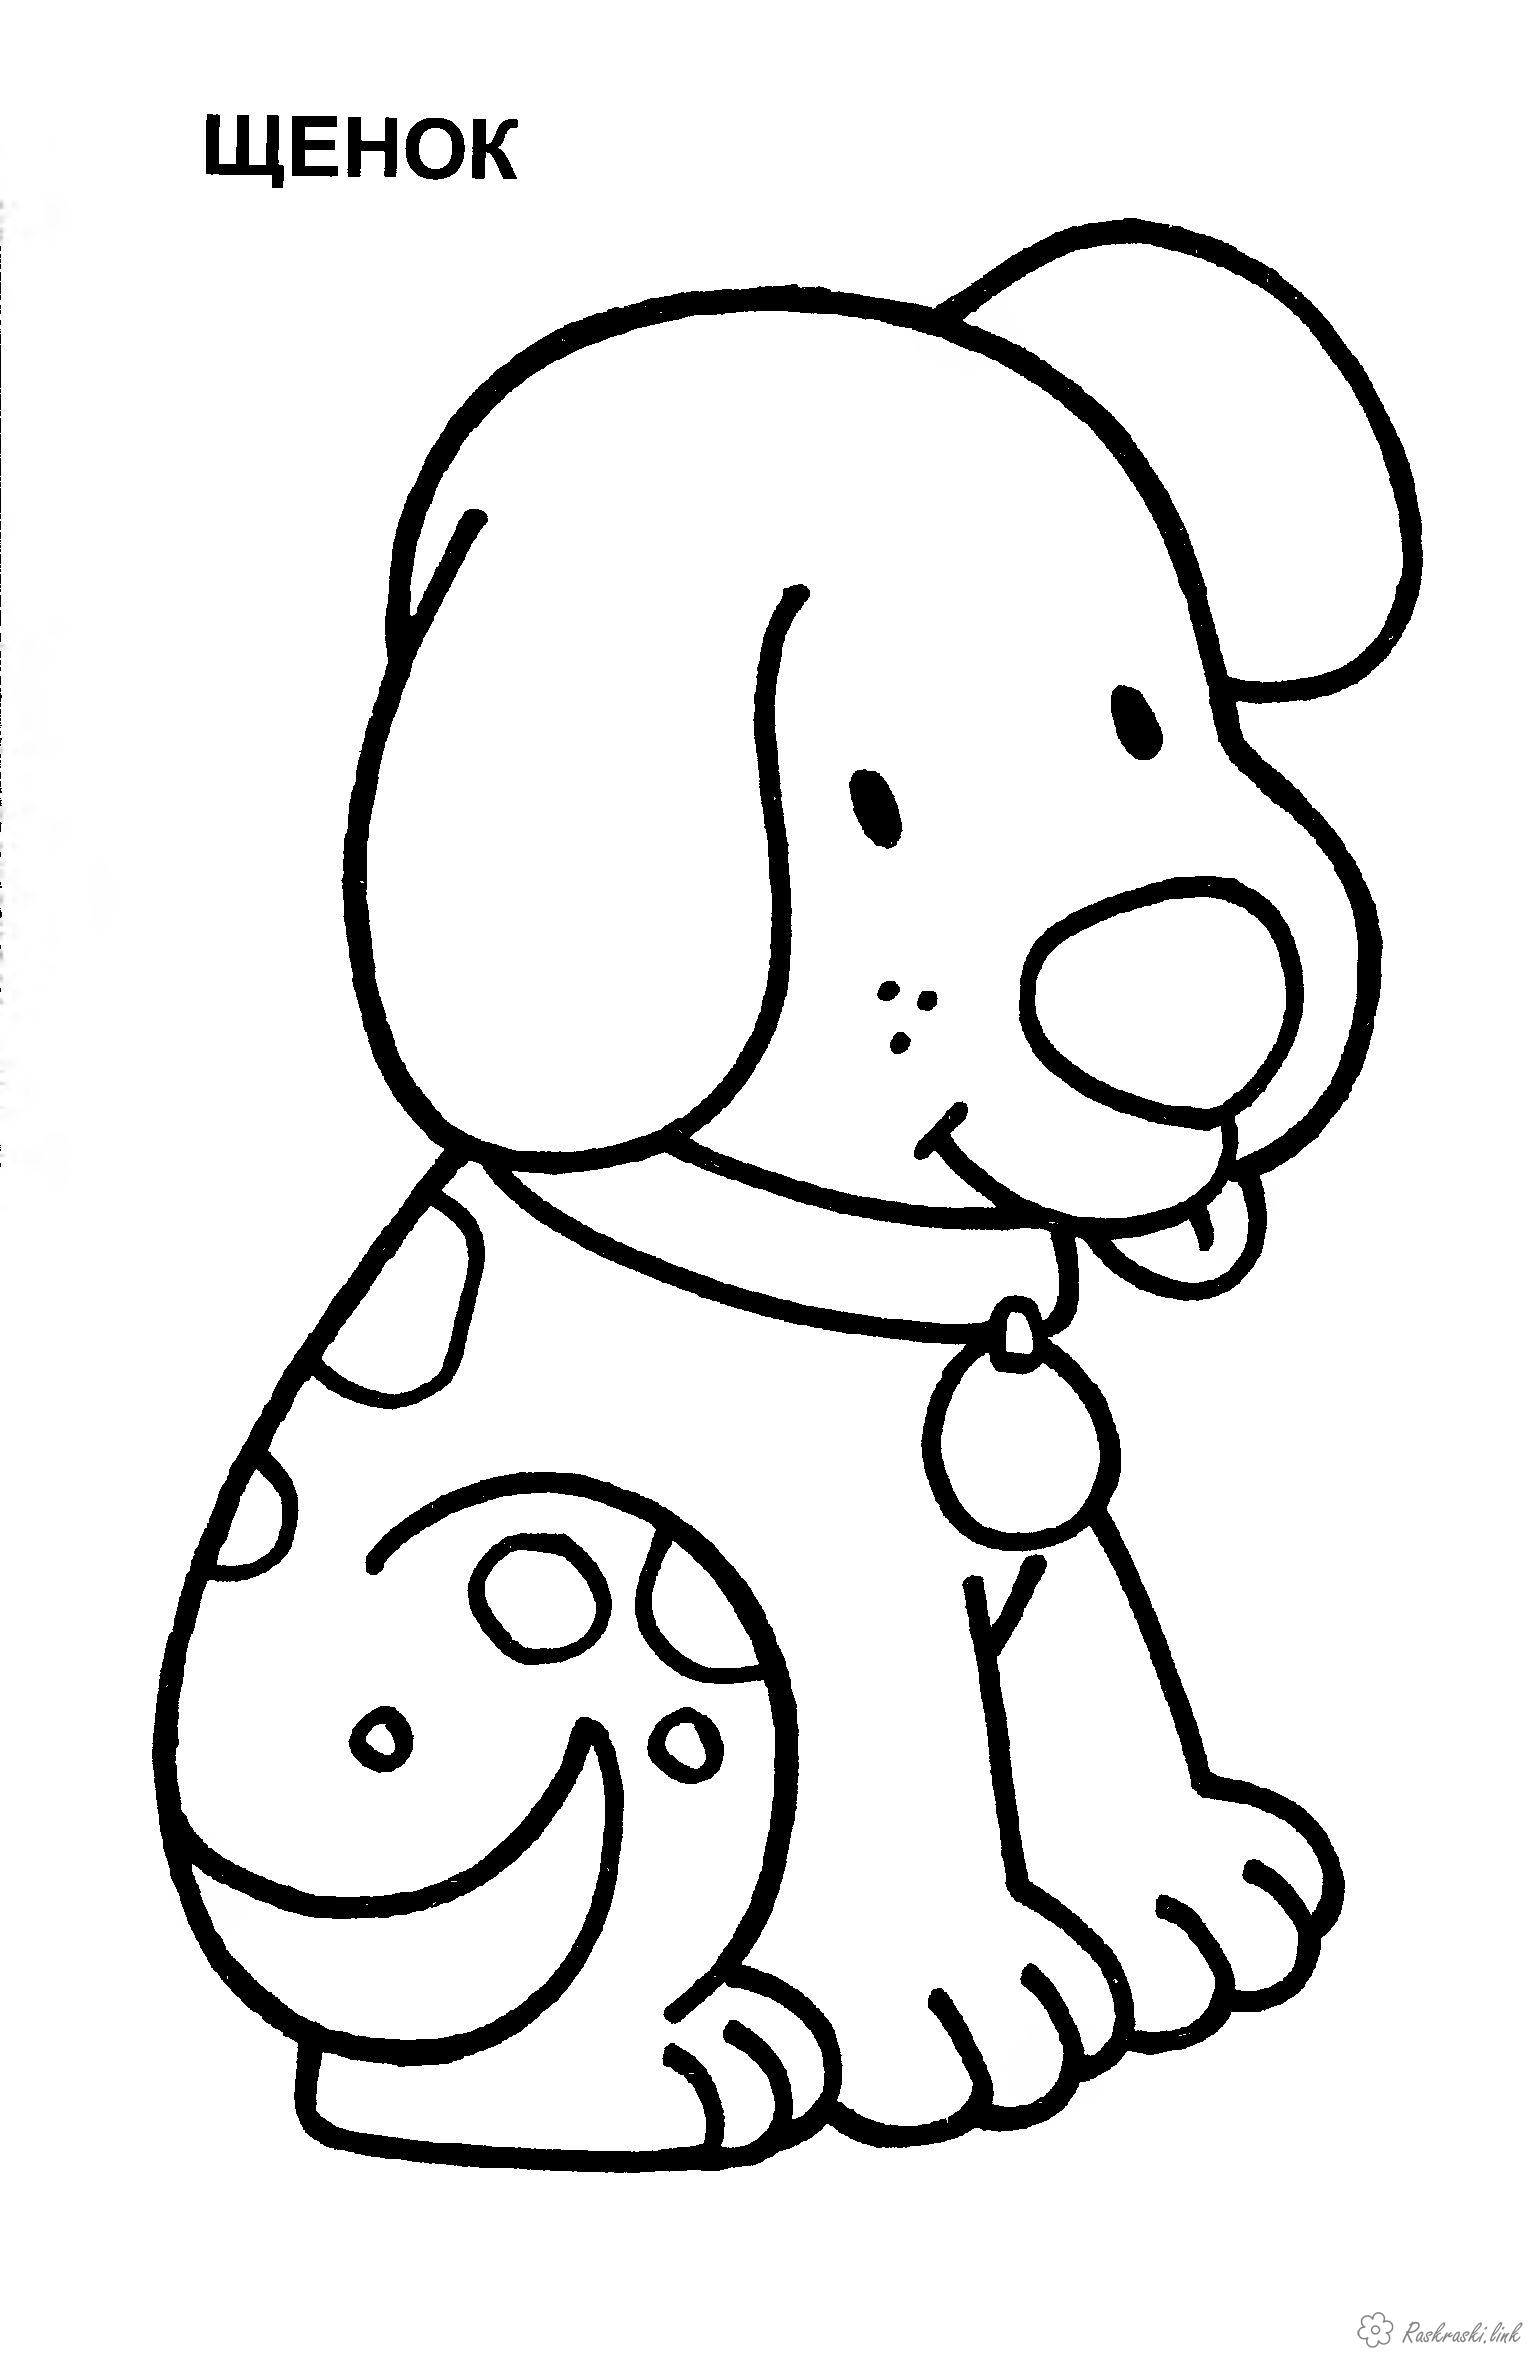 Coloring Simple coloring pages for kids Kids coloring pages puppy dog